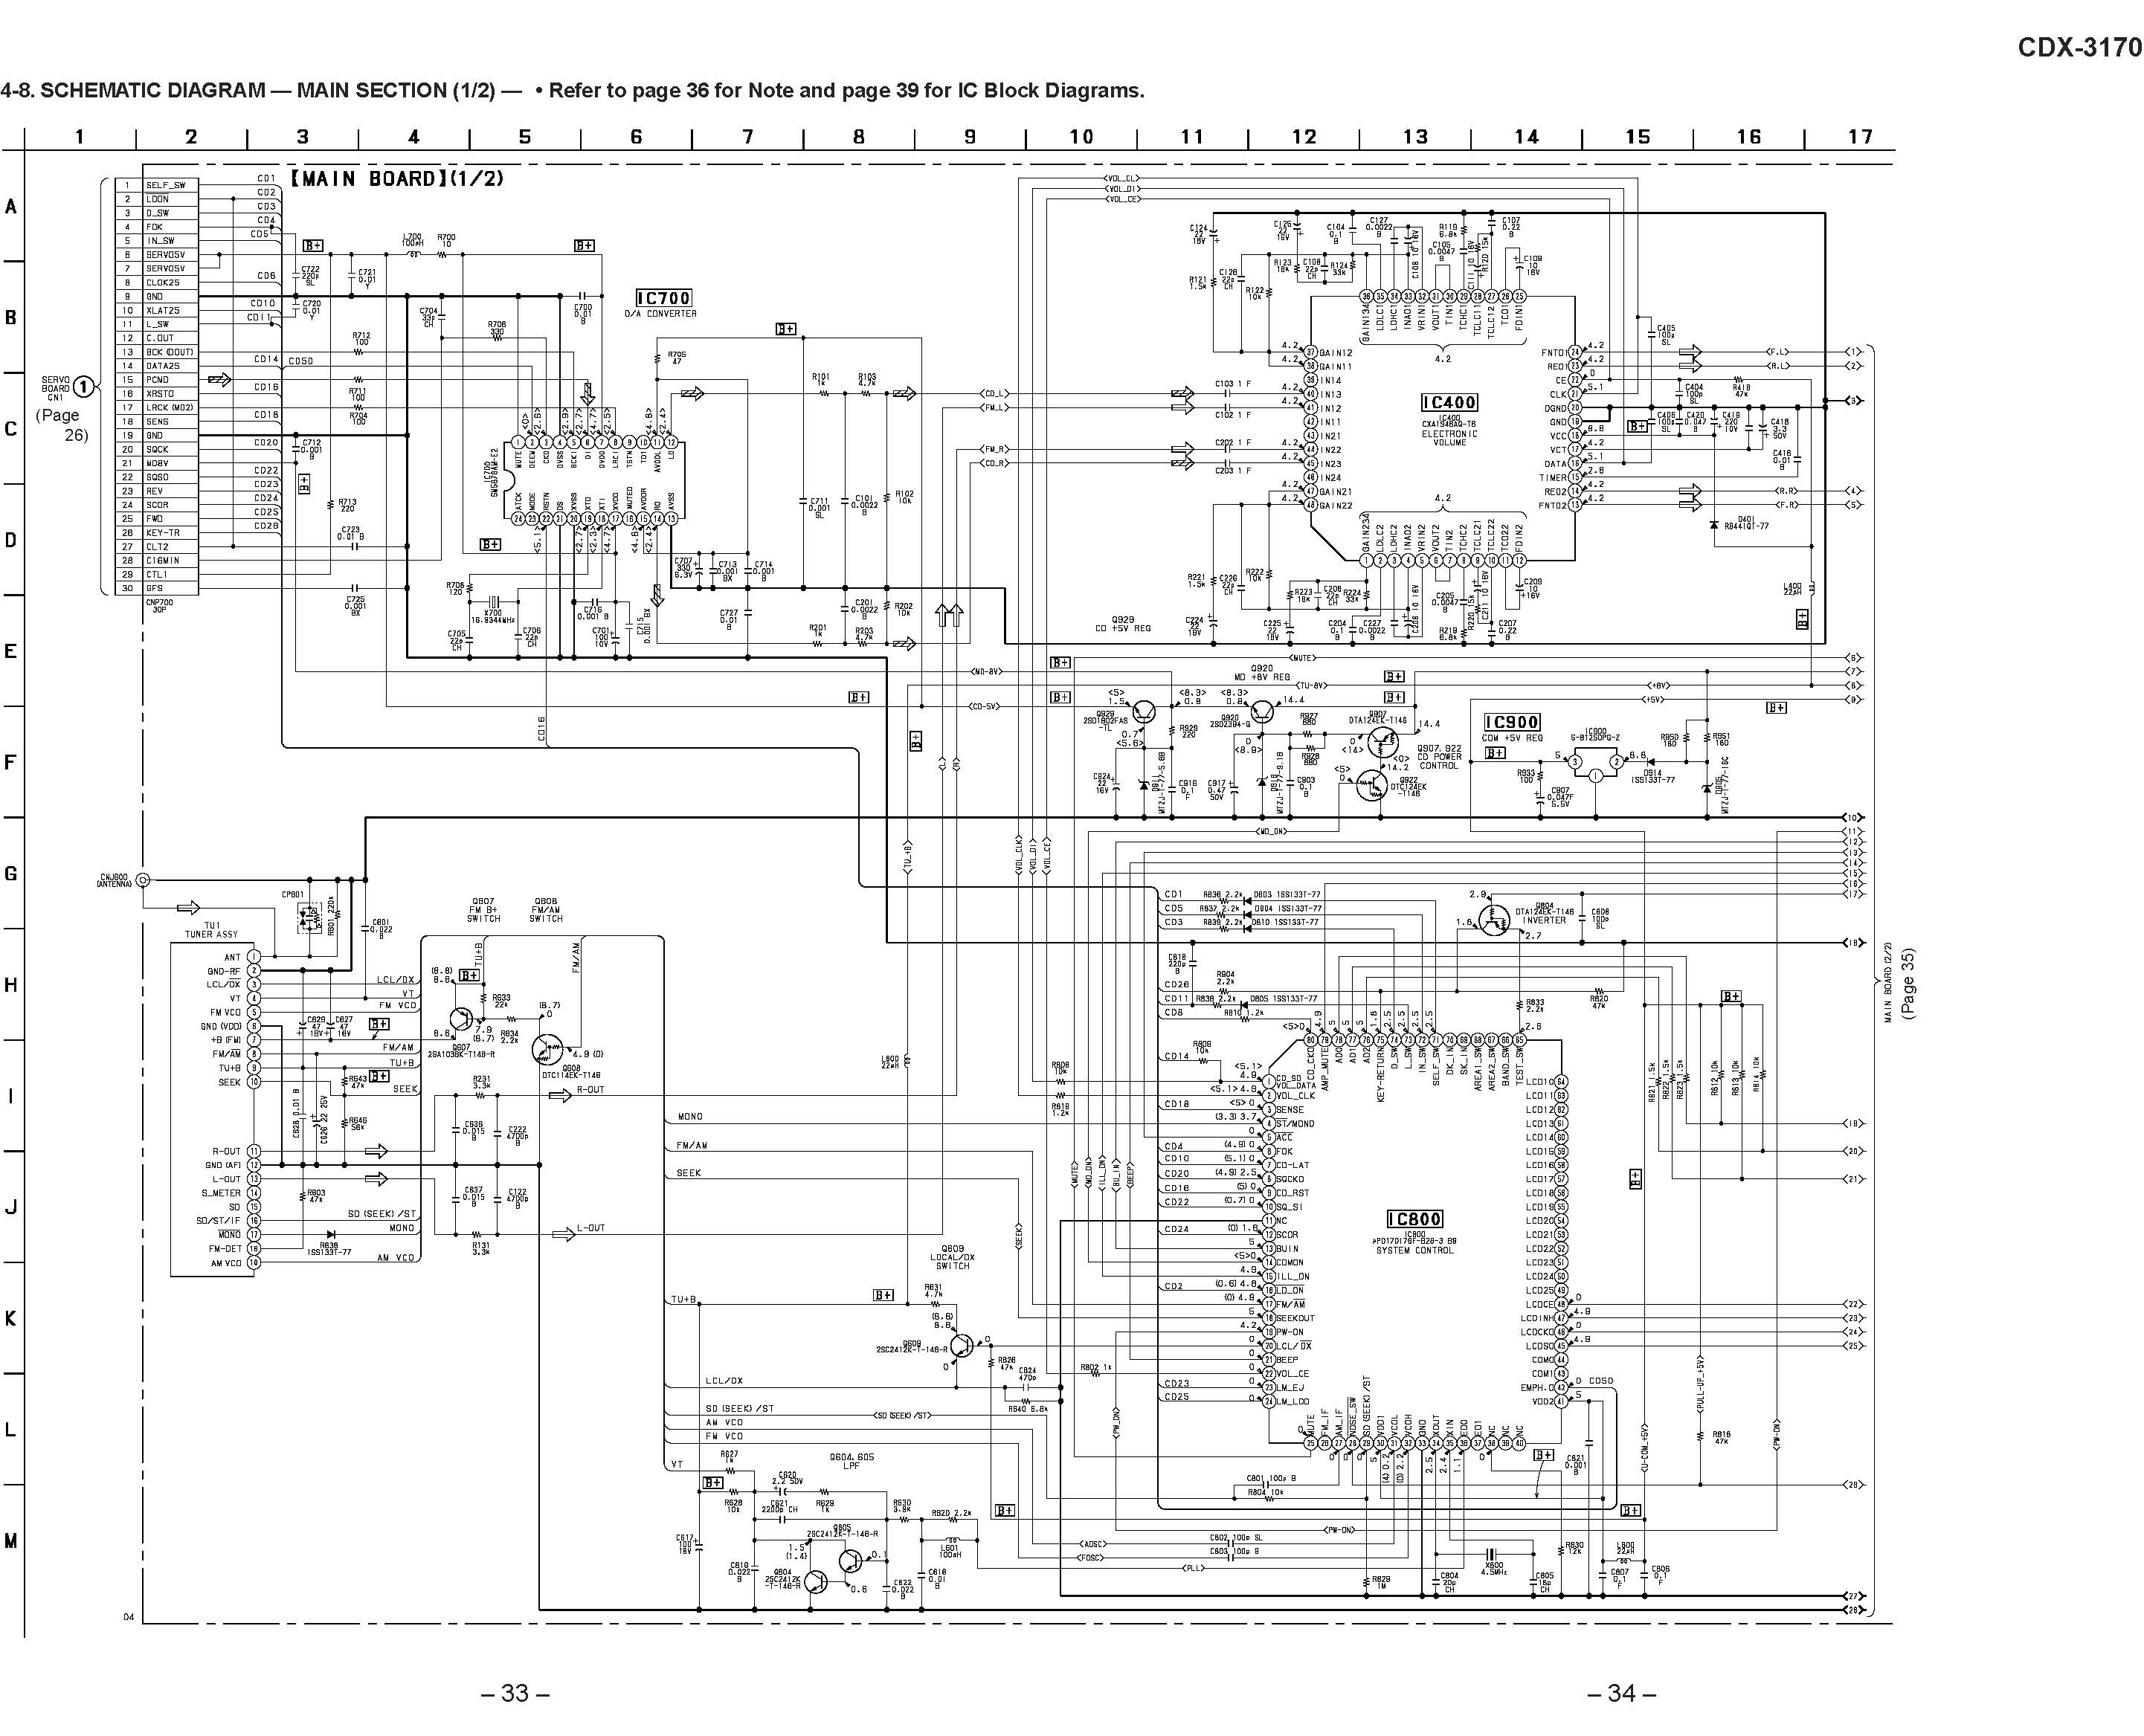 Sony Cdx Schematic Diagram In Format E